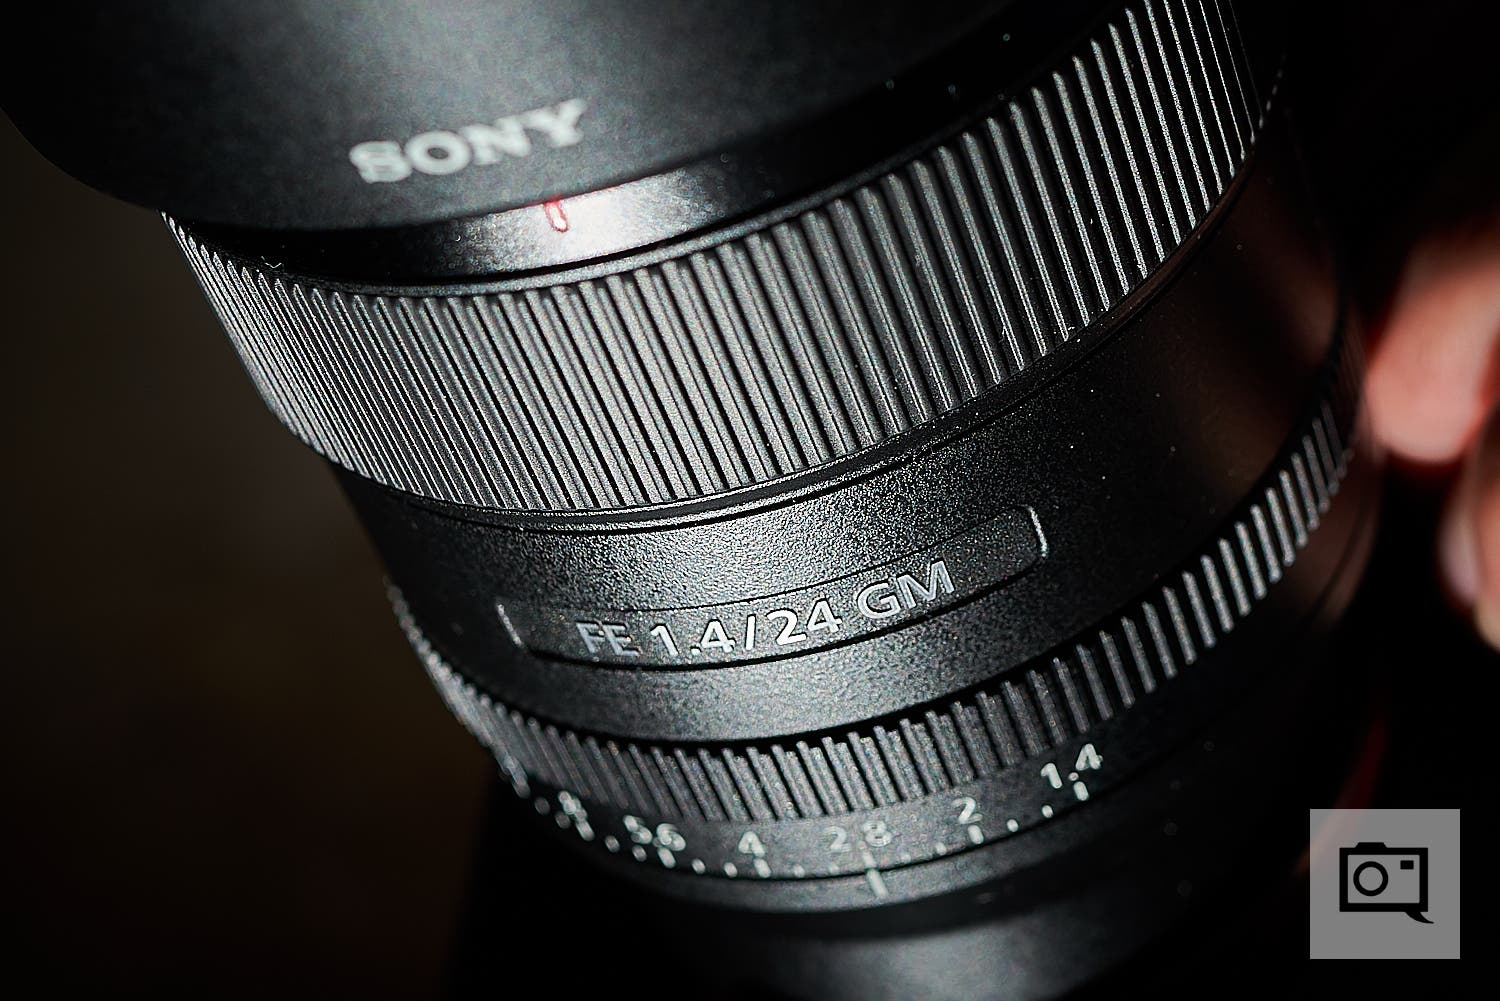 Video: How Sony Designed the 24mm F1.4 G Master Lens